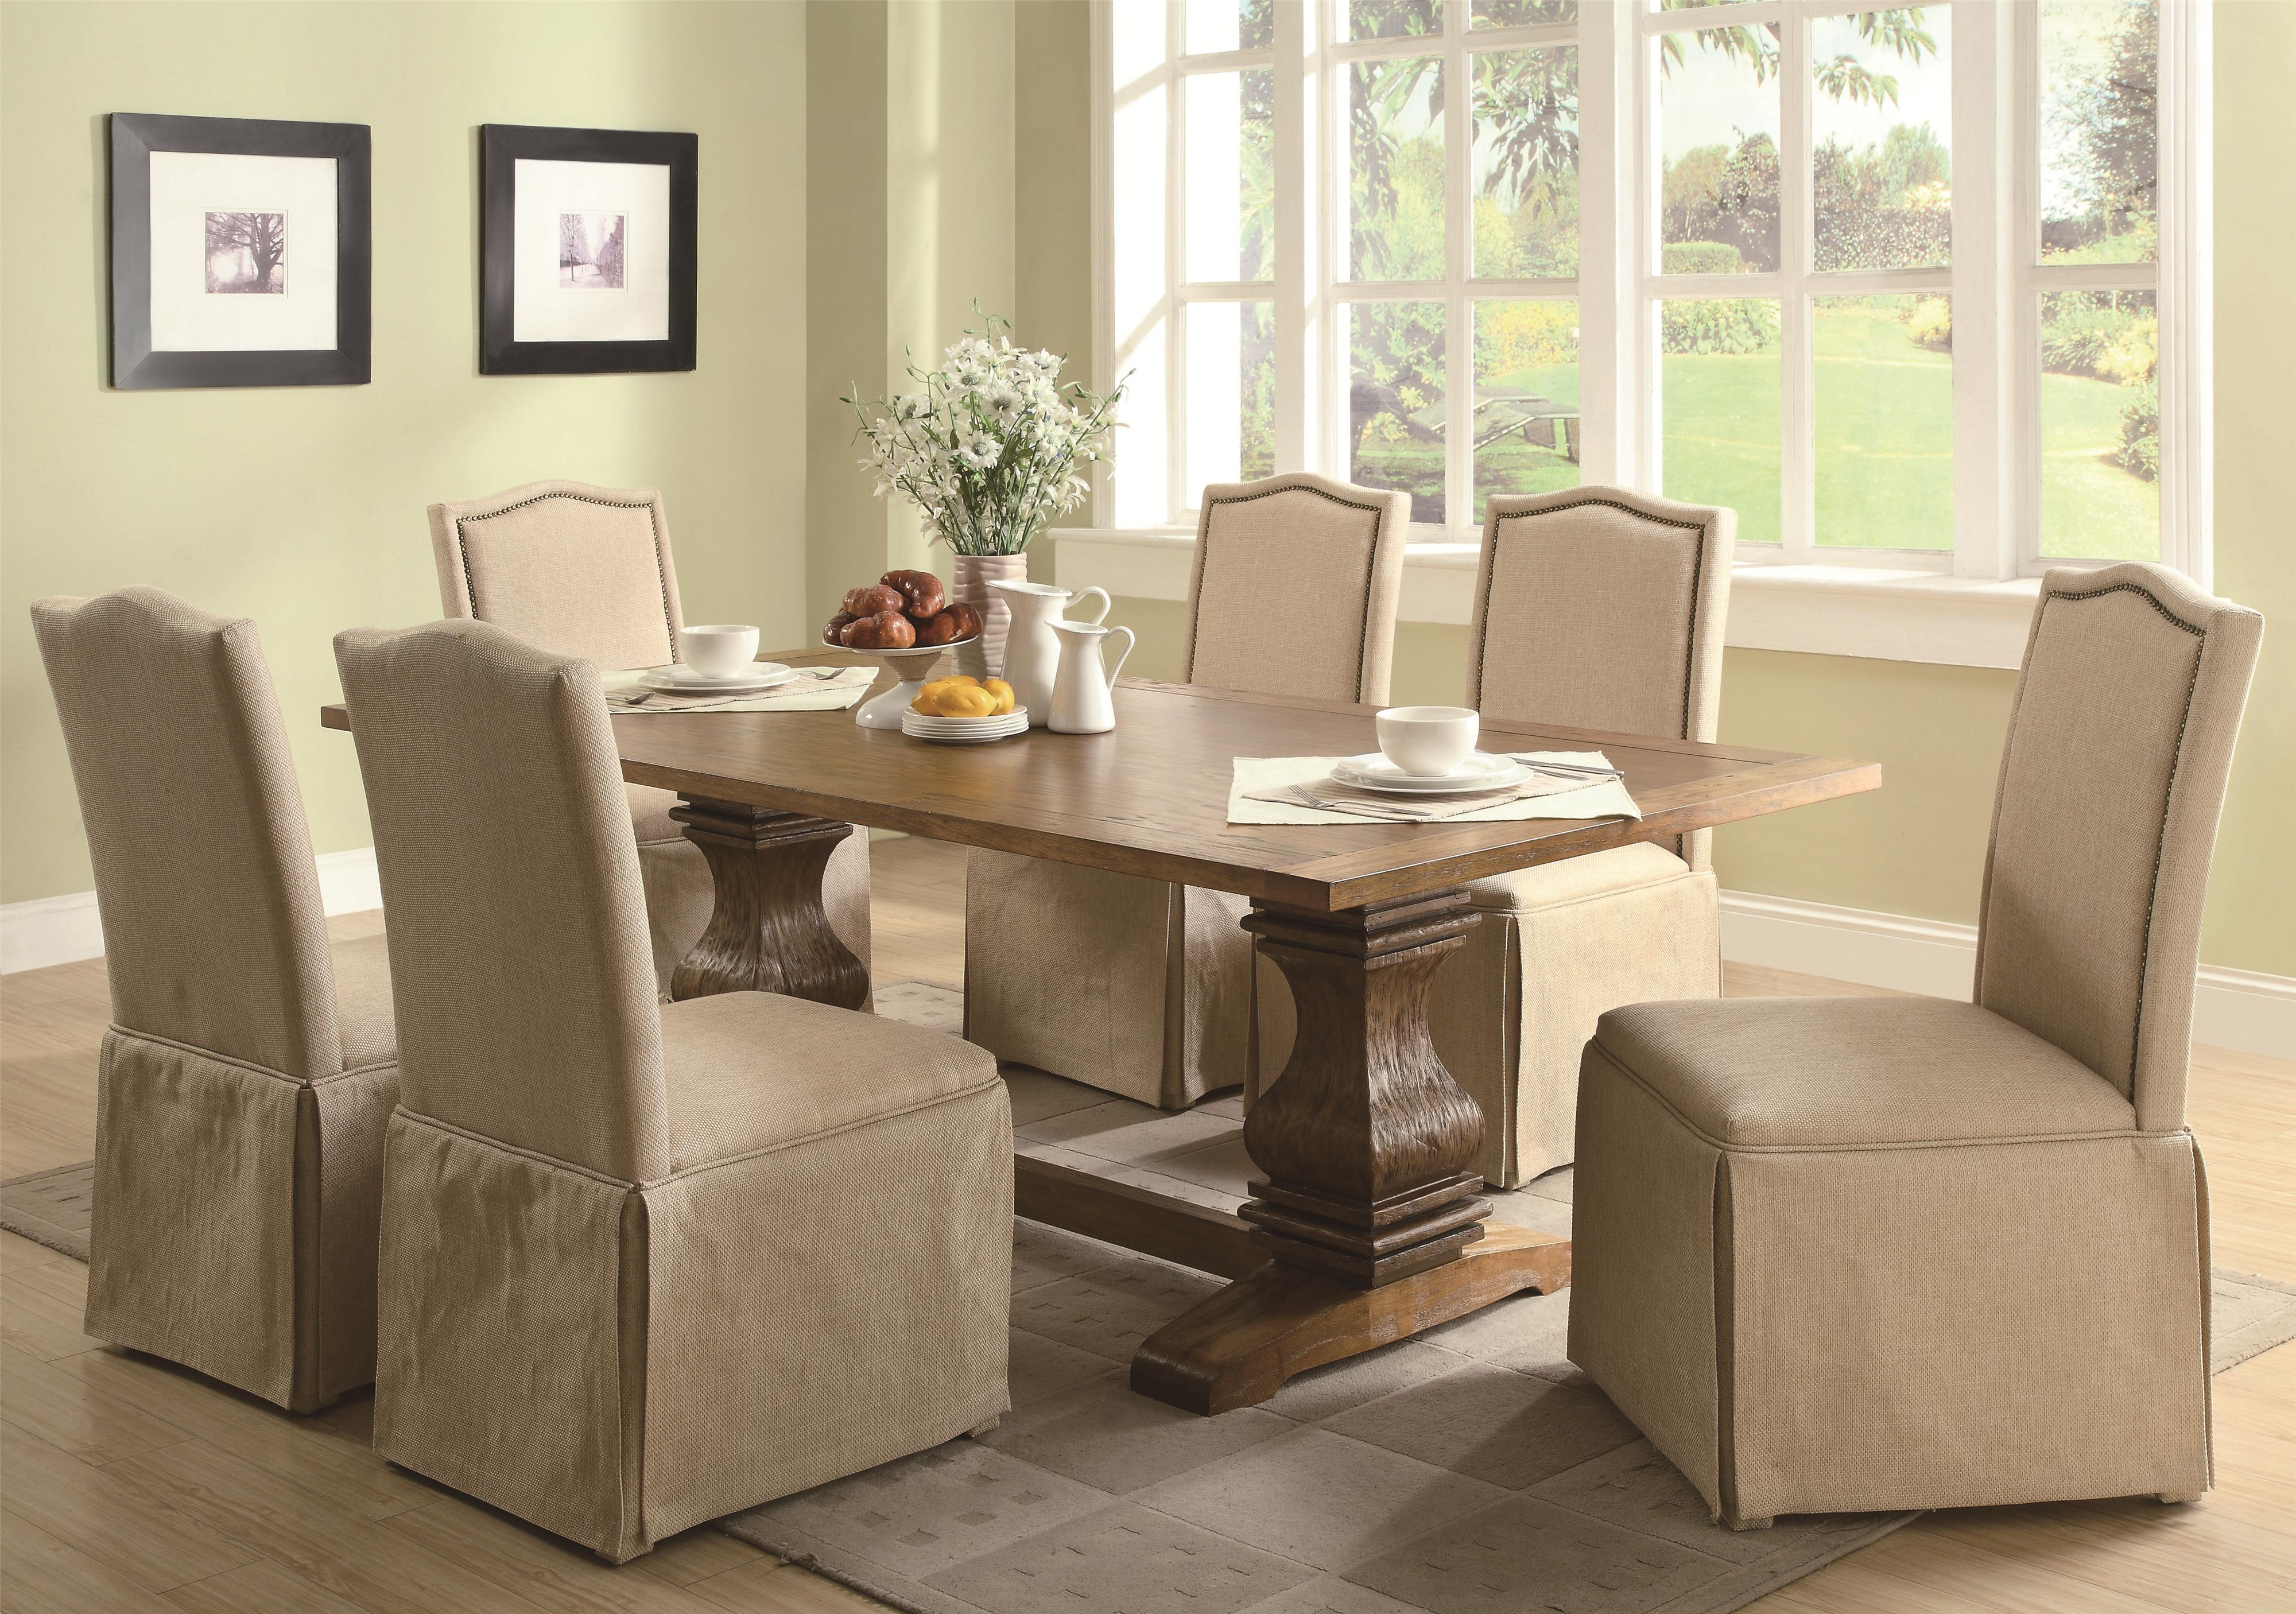 Coaster Parkins Parson Chair with Skirt Value City Furniture